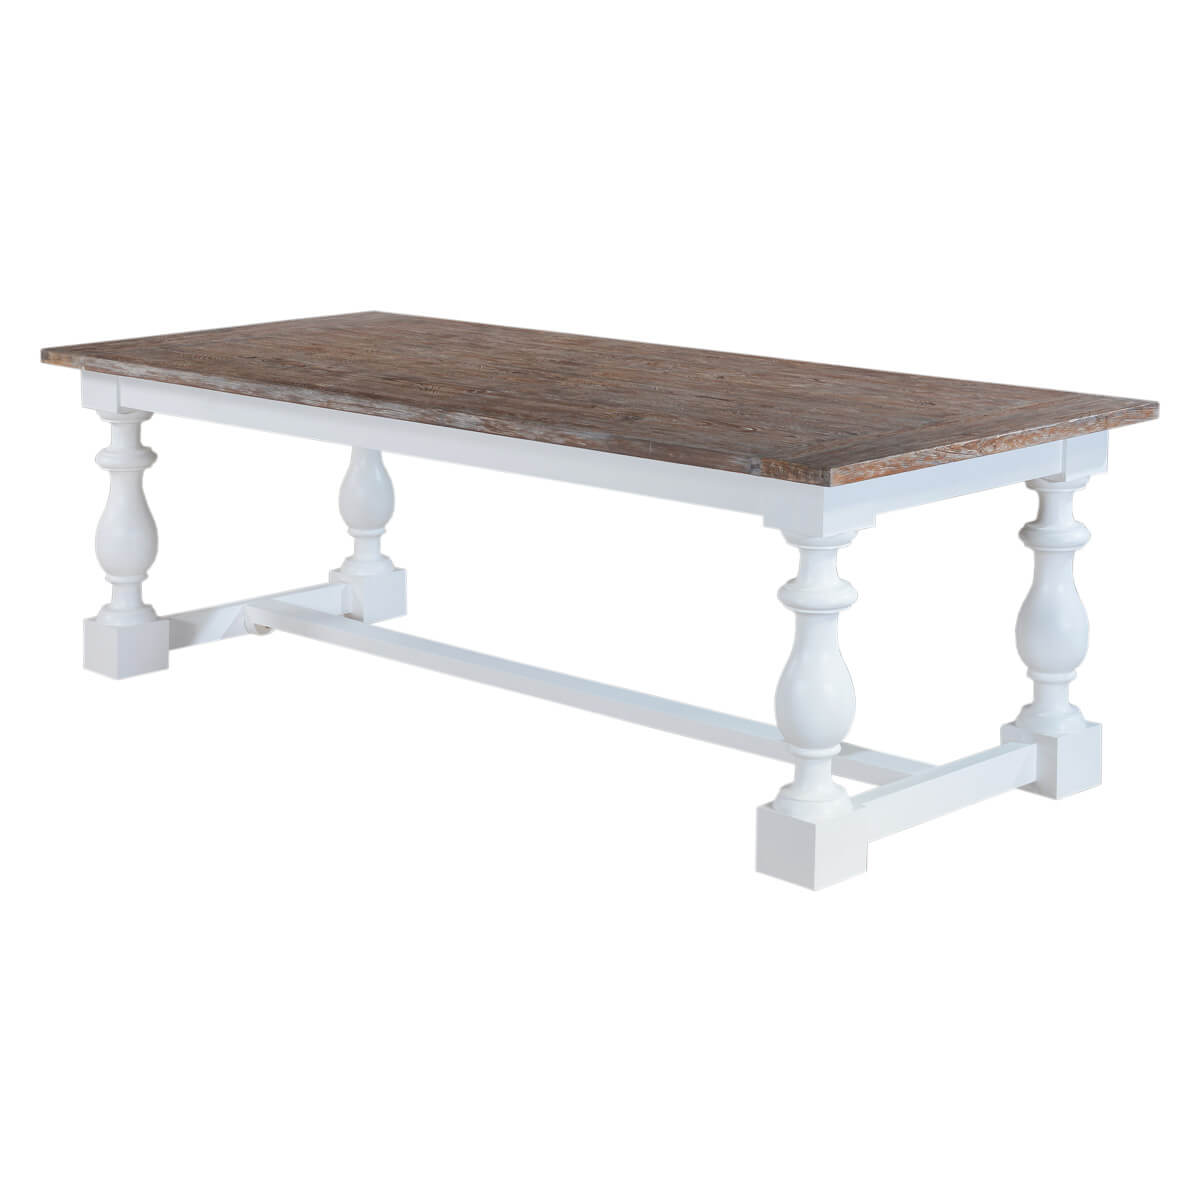 Danville Modern Rustic Solid Wood Trestle Baluster Dining Table